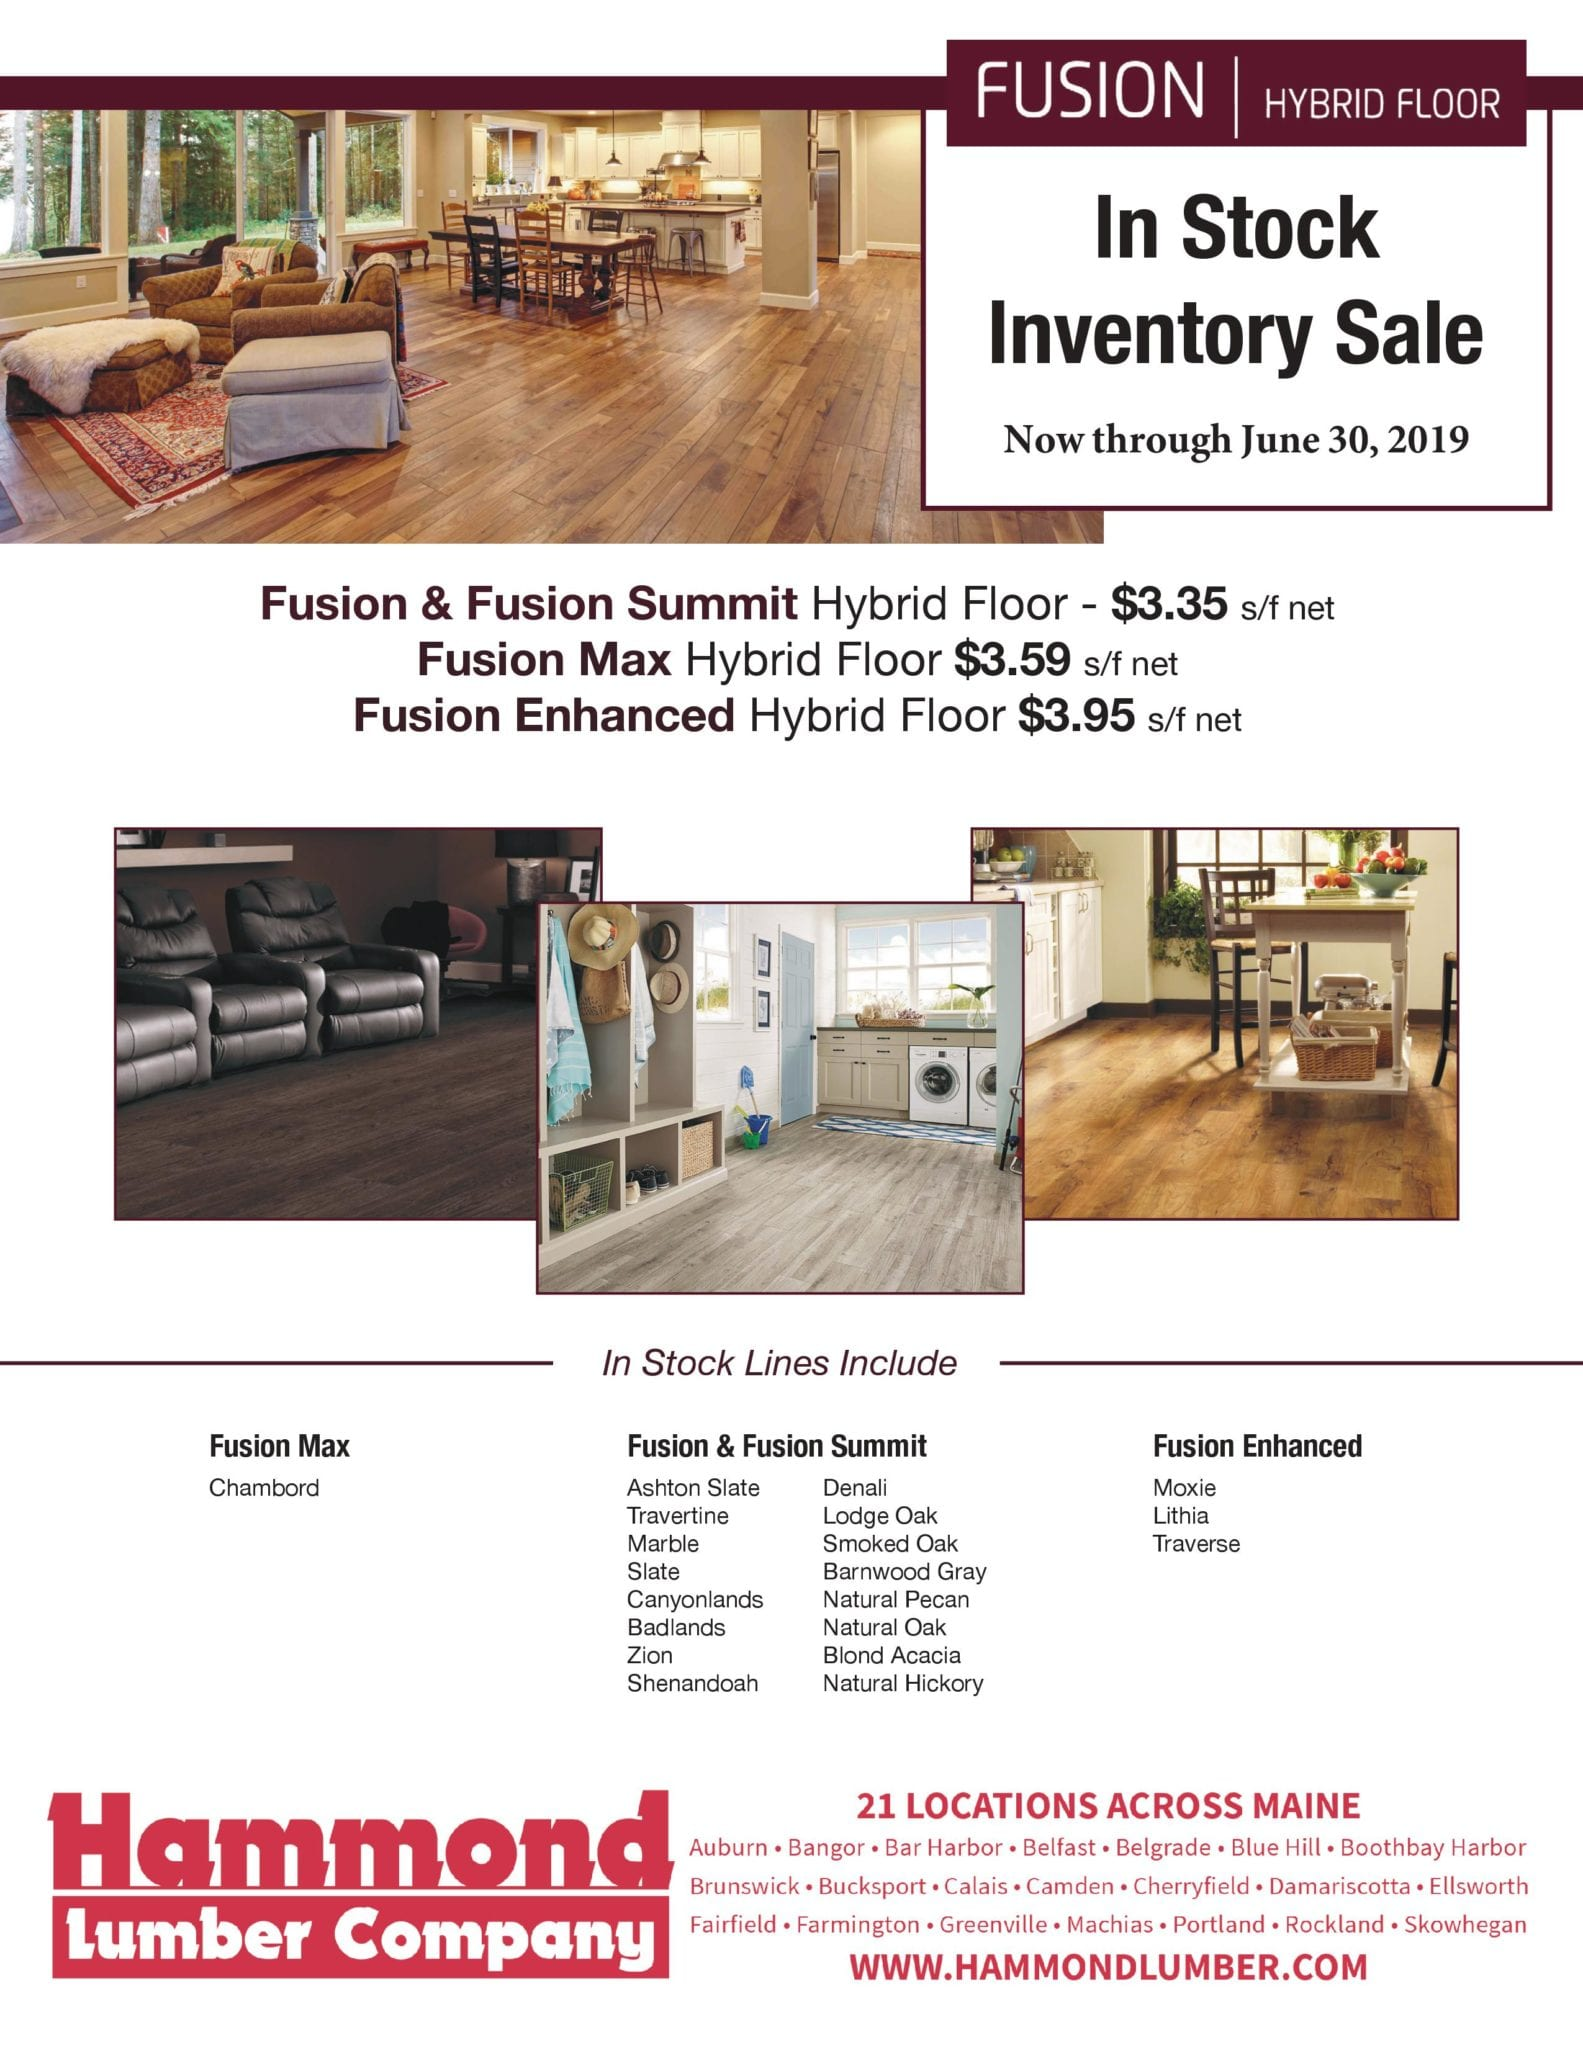 Fusion In Stock Inventory Sale Hammond Lumber Company